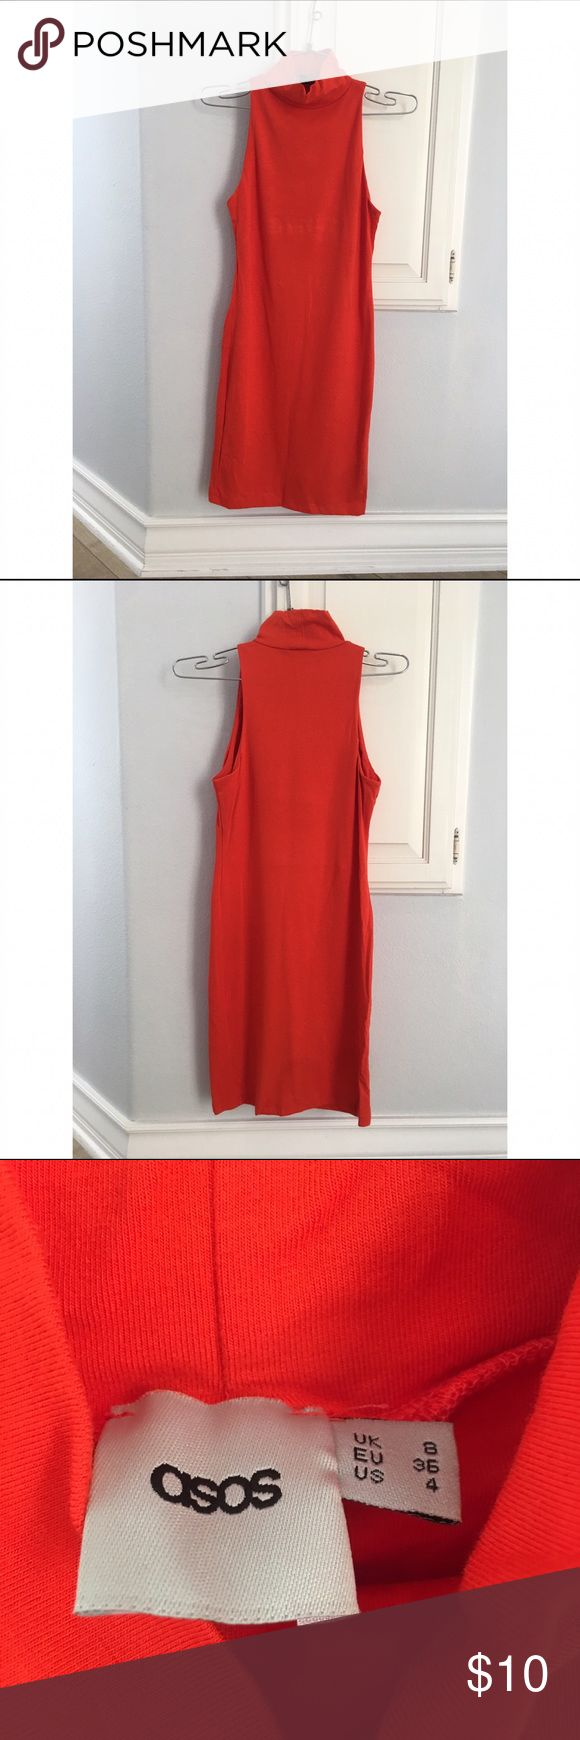 ASOS red dress ASOS red/burnt orange high neck midi dress. So flattering and looks great with heels or sandals. Size 4. 48% cotton, 48% modal, 4% elastane. Perfect condition ASOS Dresses Midi